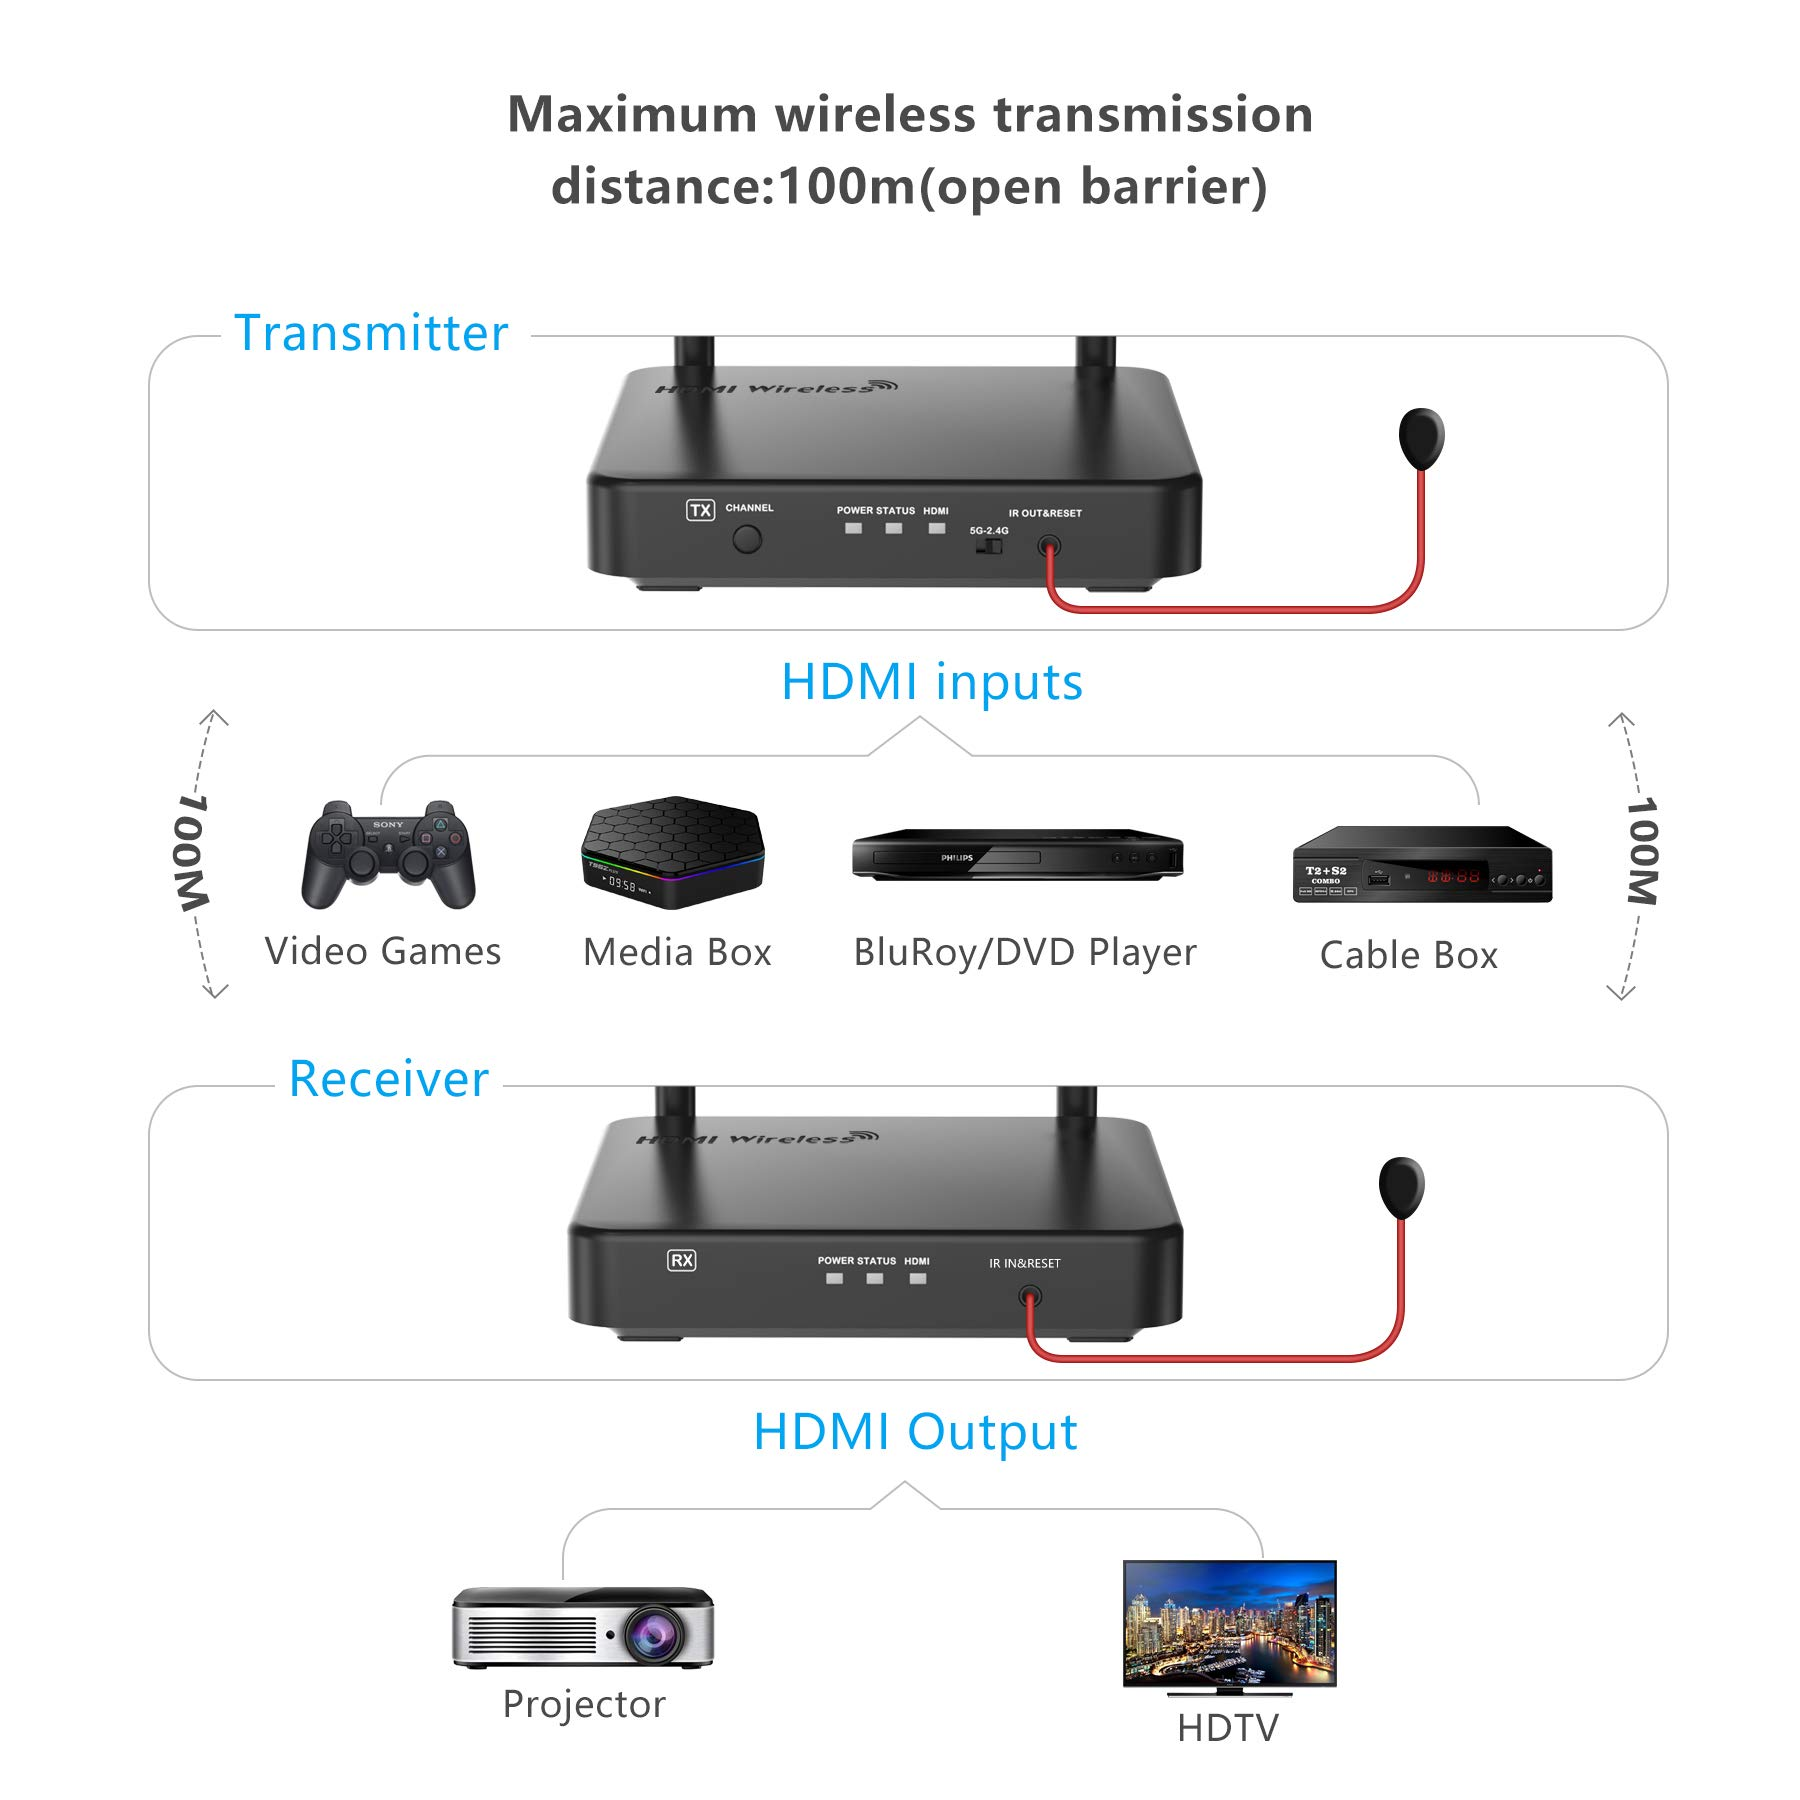 [2019] HDMI Wireless Extender, Nextrend Newest Wireless Transmitter and Receiver Kit Supporting Hd 1080P 3D Video&Digital Audio from Pc, Netflix, Ps4 to 1080P TV Projector with IR, Pro Version 328ft by NexTrend (Image #3)